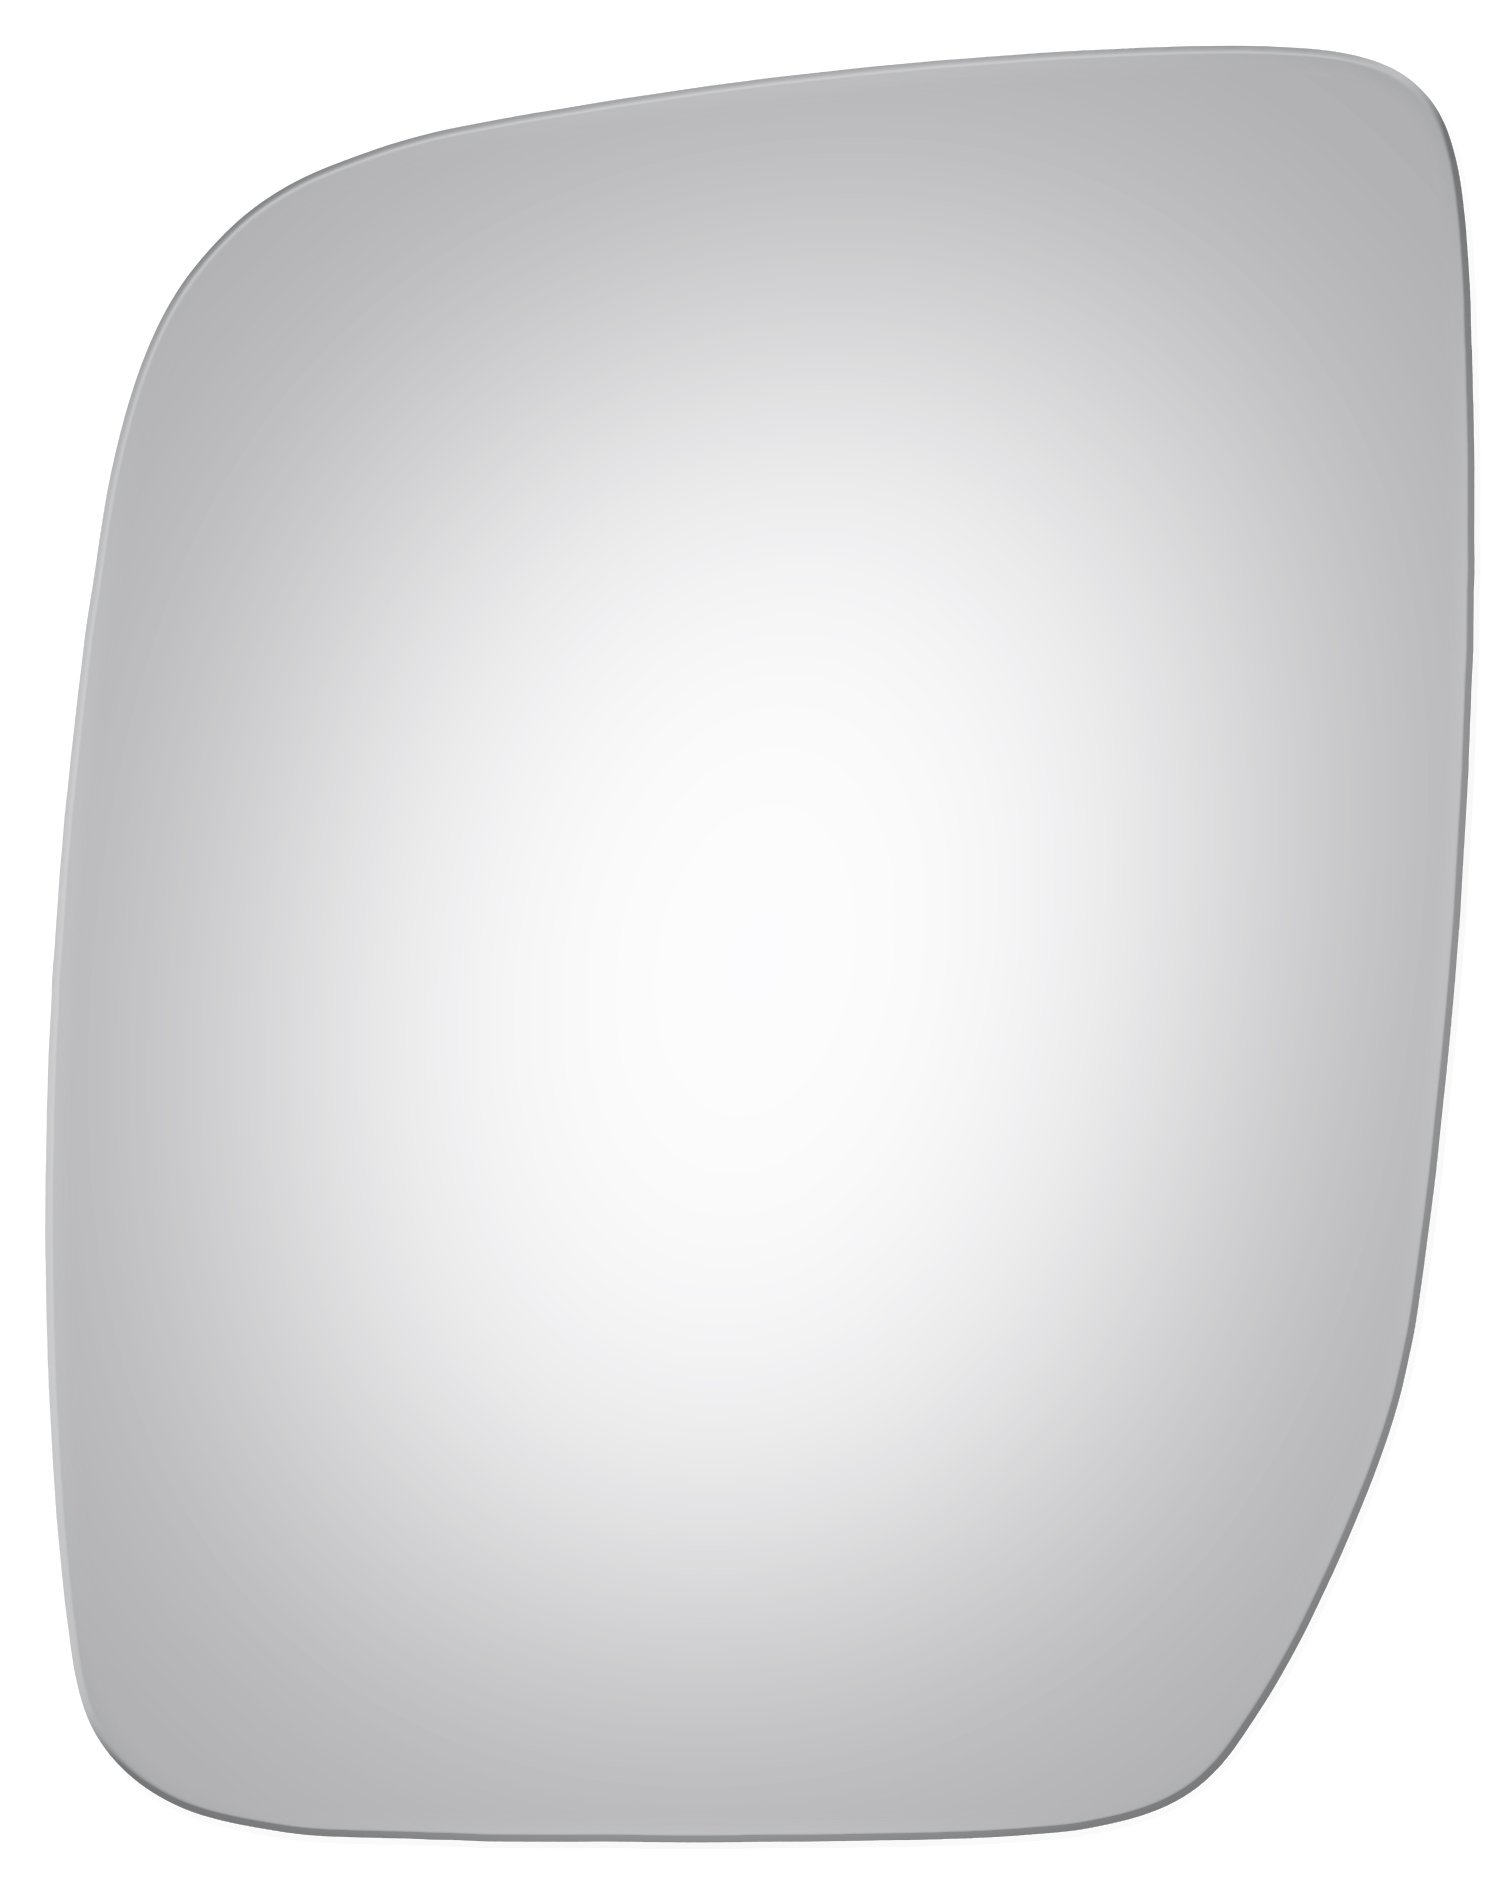 Burco 4236 Left Side Mirror Glass for 08-09 Ford